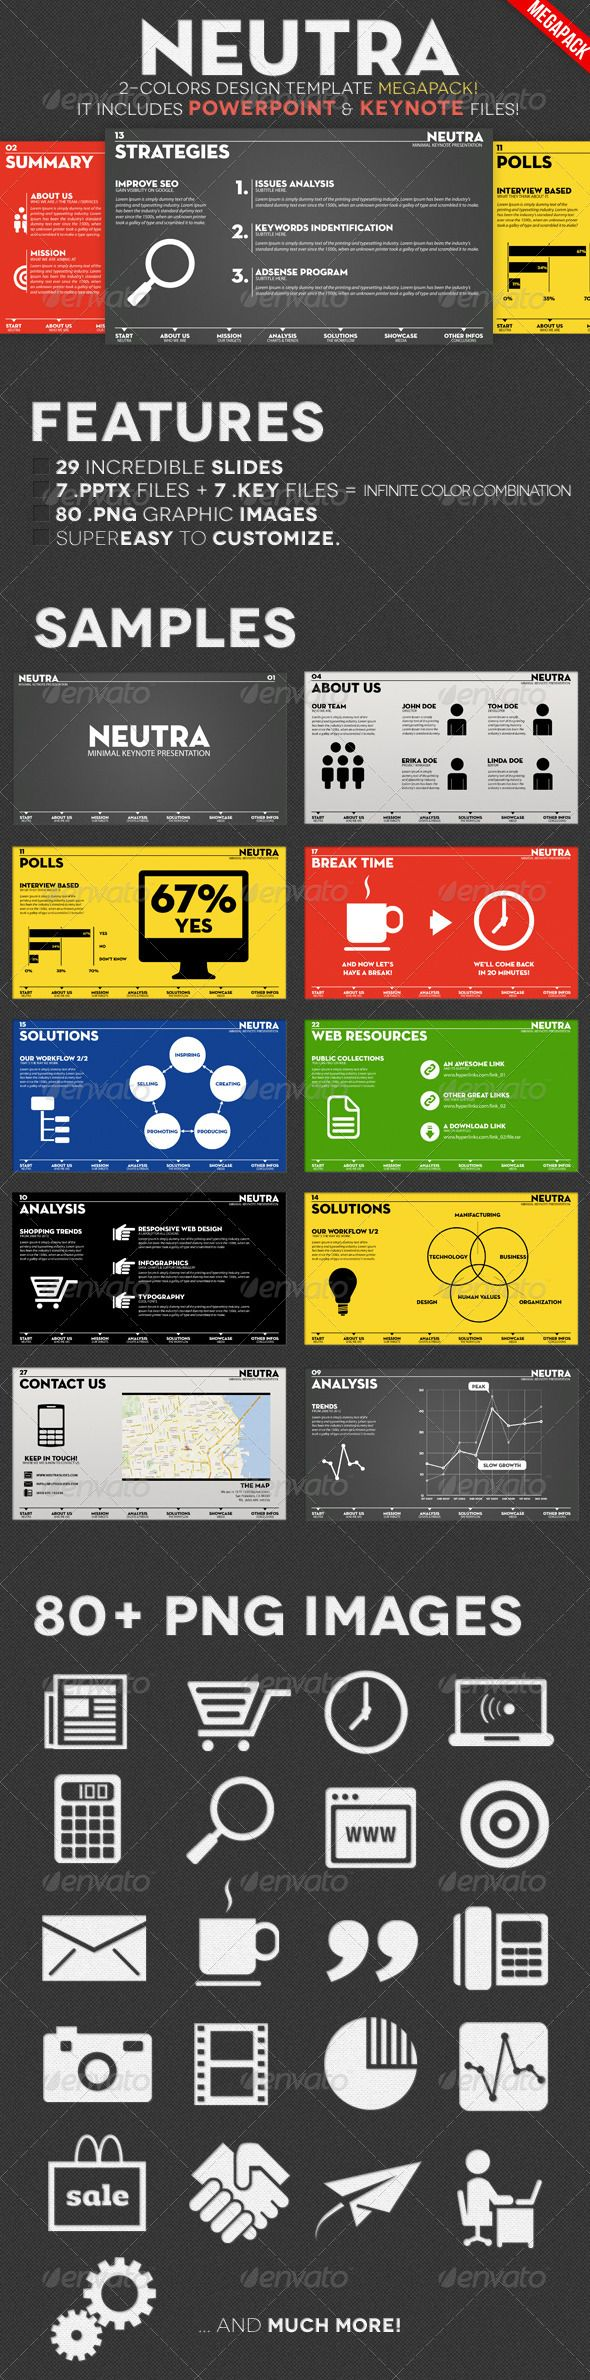 Presentation Templates - Neutra - Two Colors PowerPoint & Keynote Pack | GraphicRiver